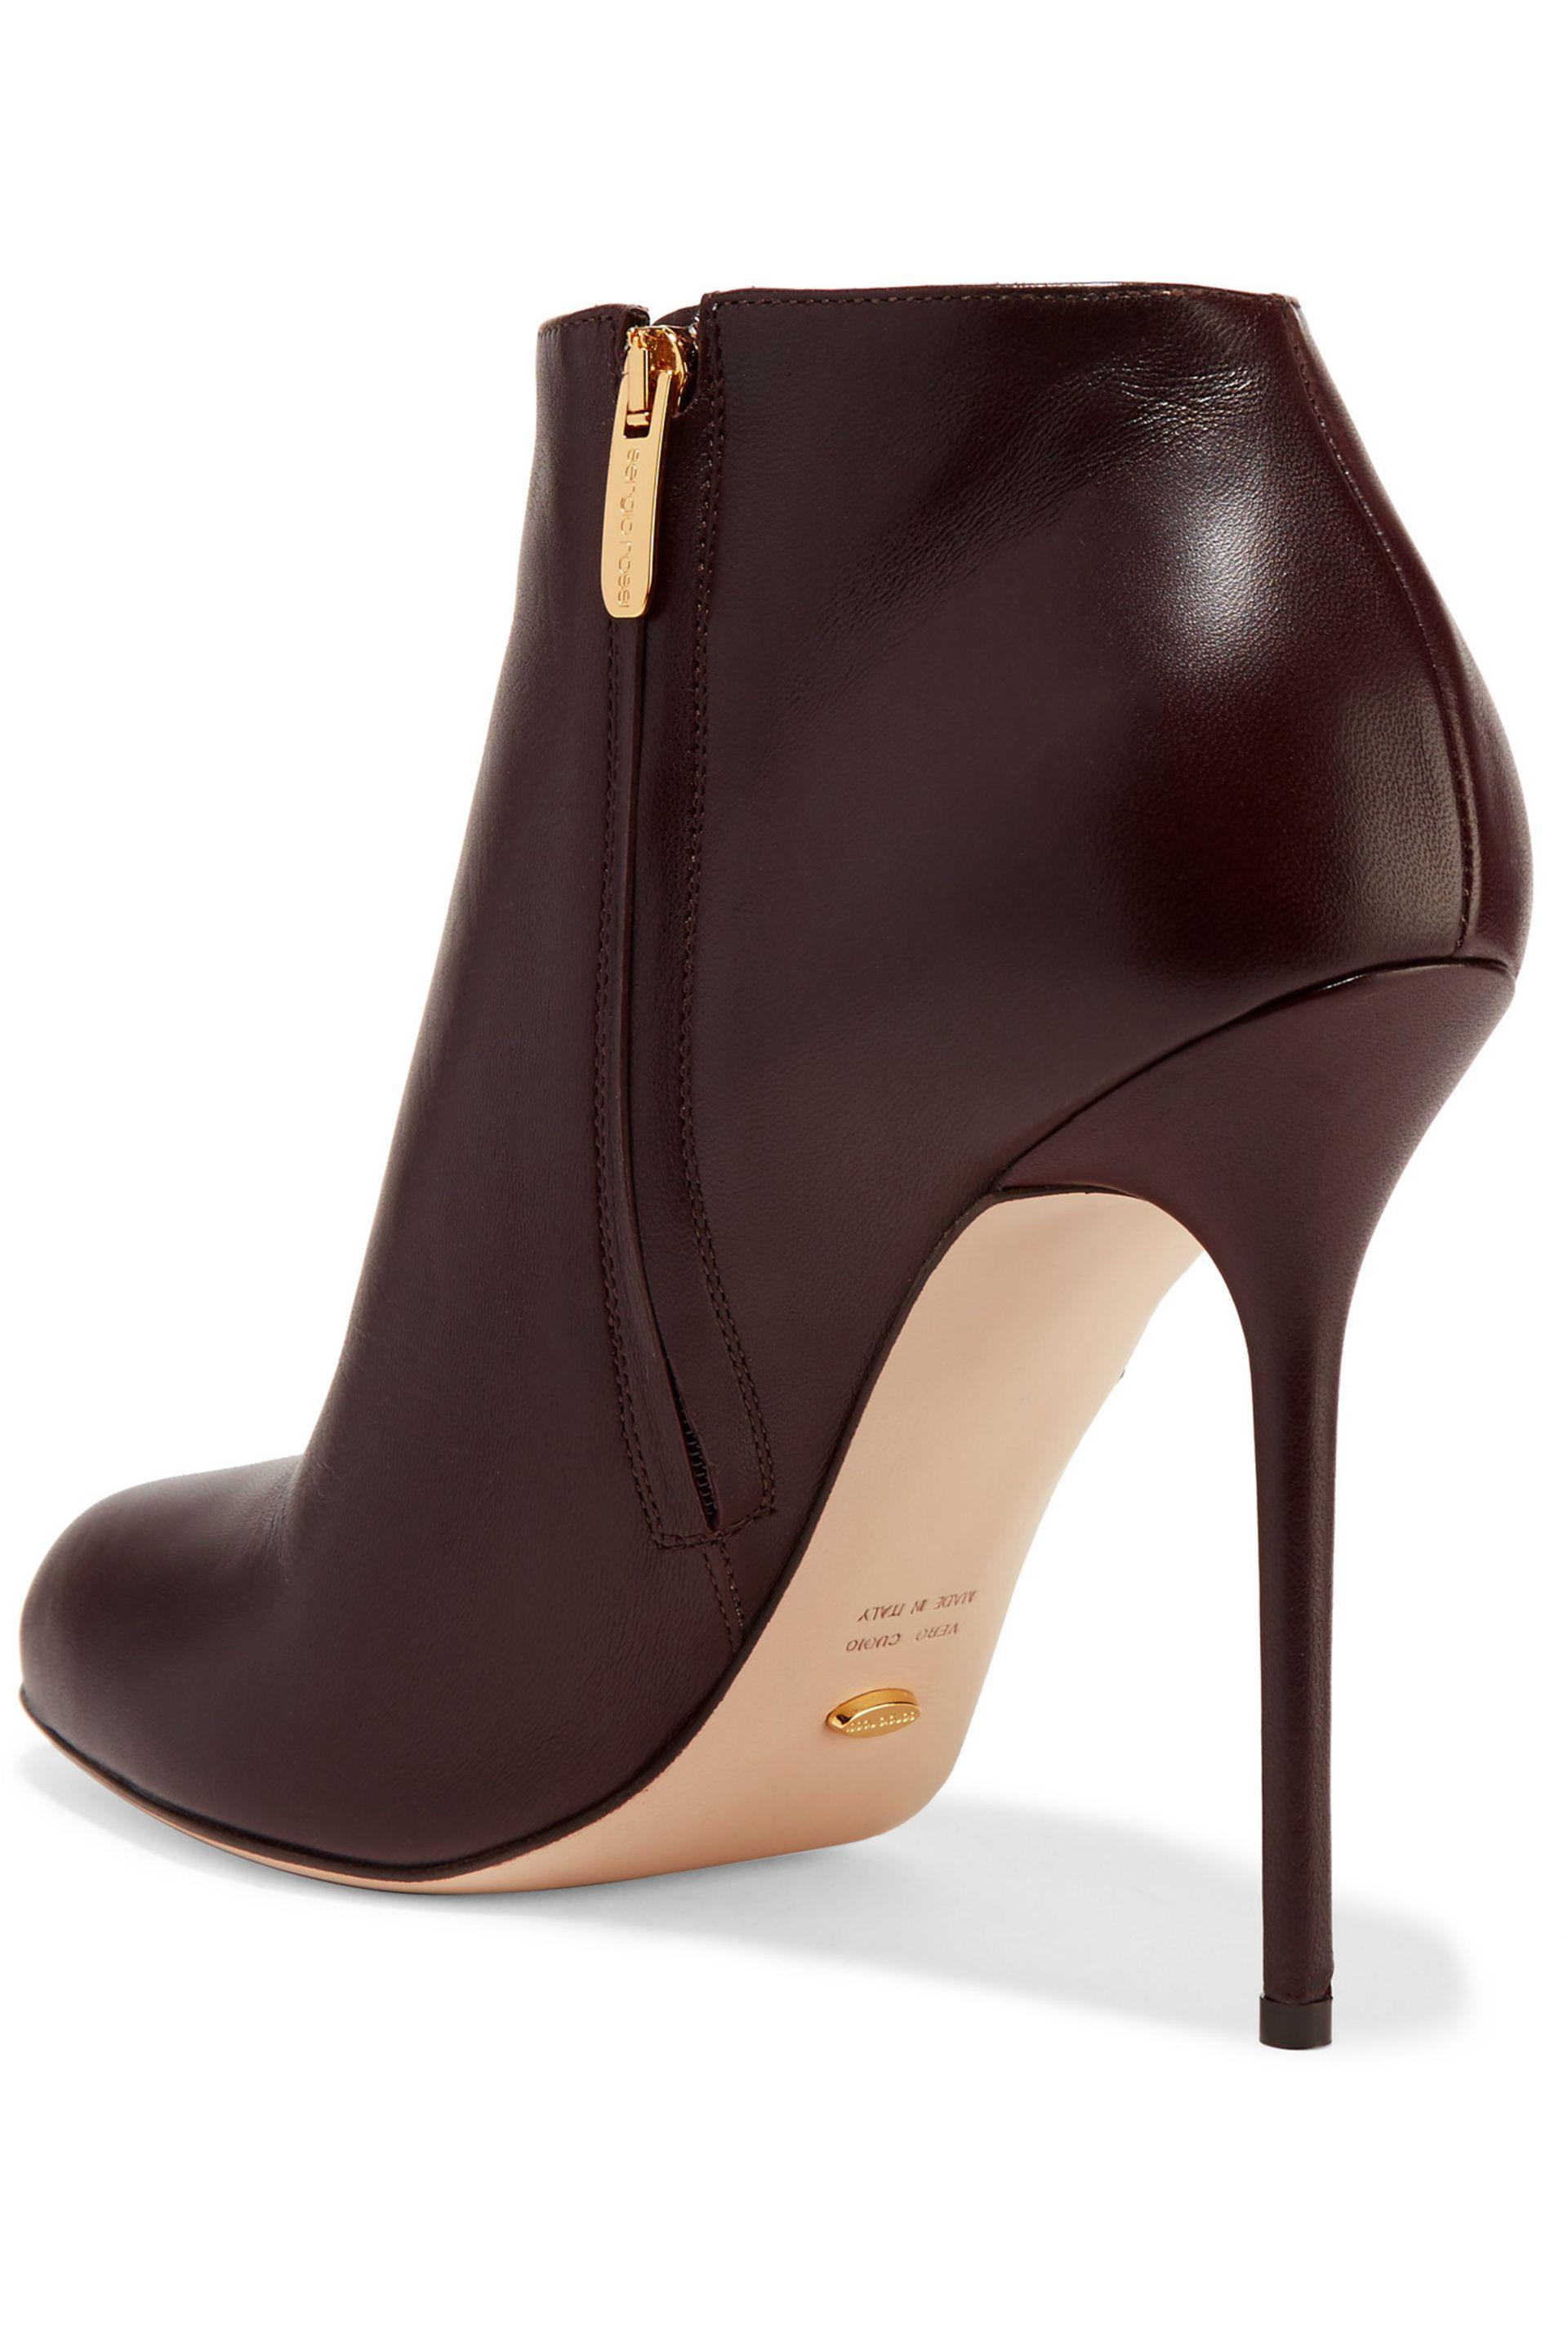 13aae37139e6 Lyst - Sergio Rossi Leather Ankle Boots in Brown